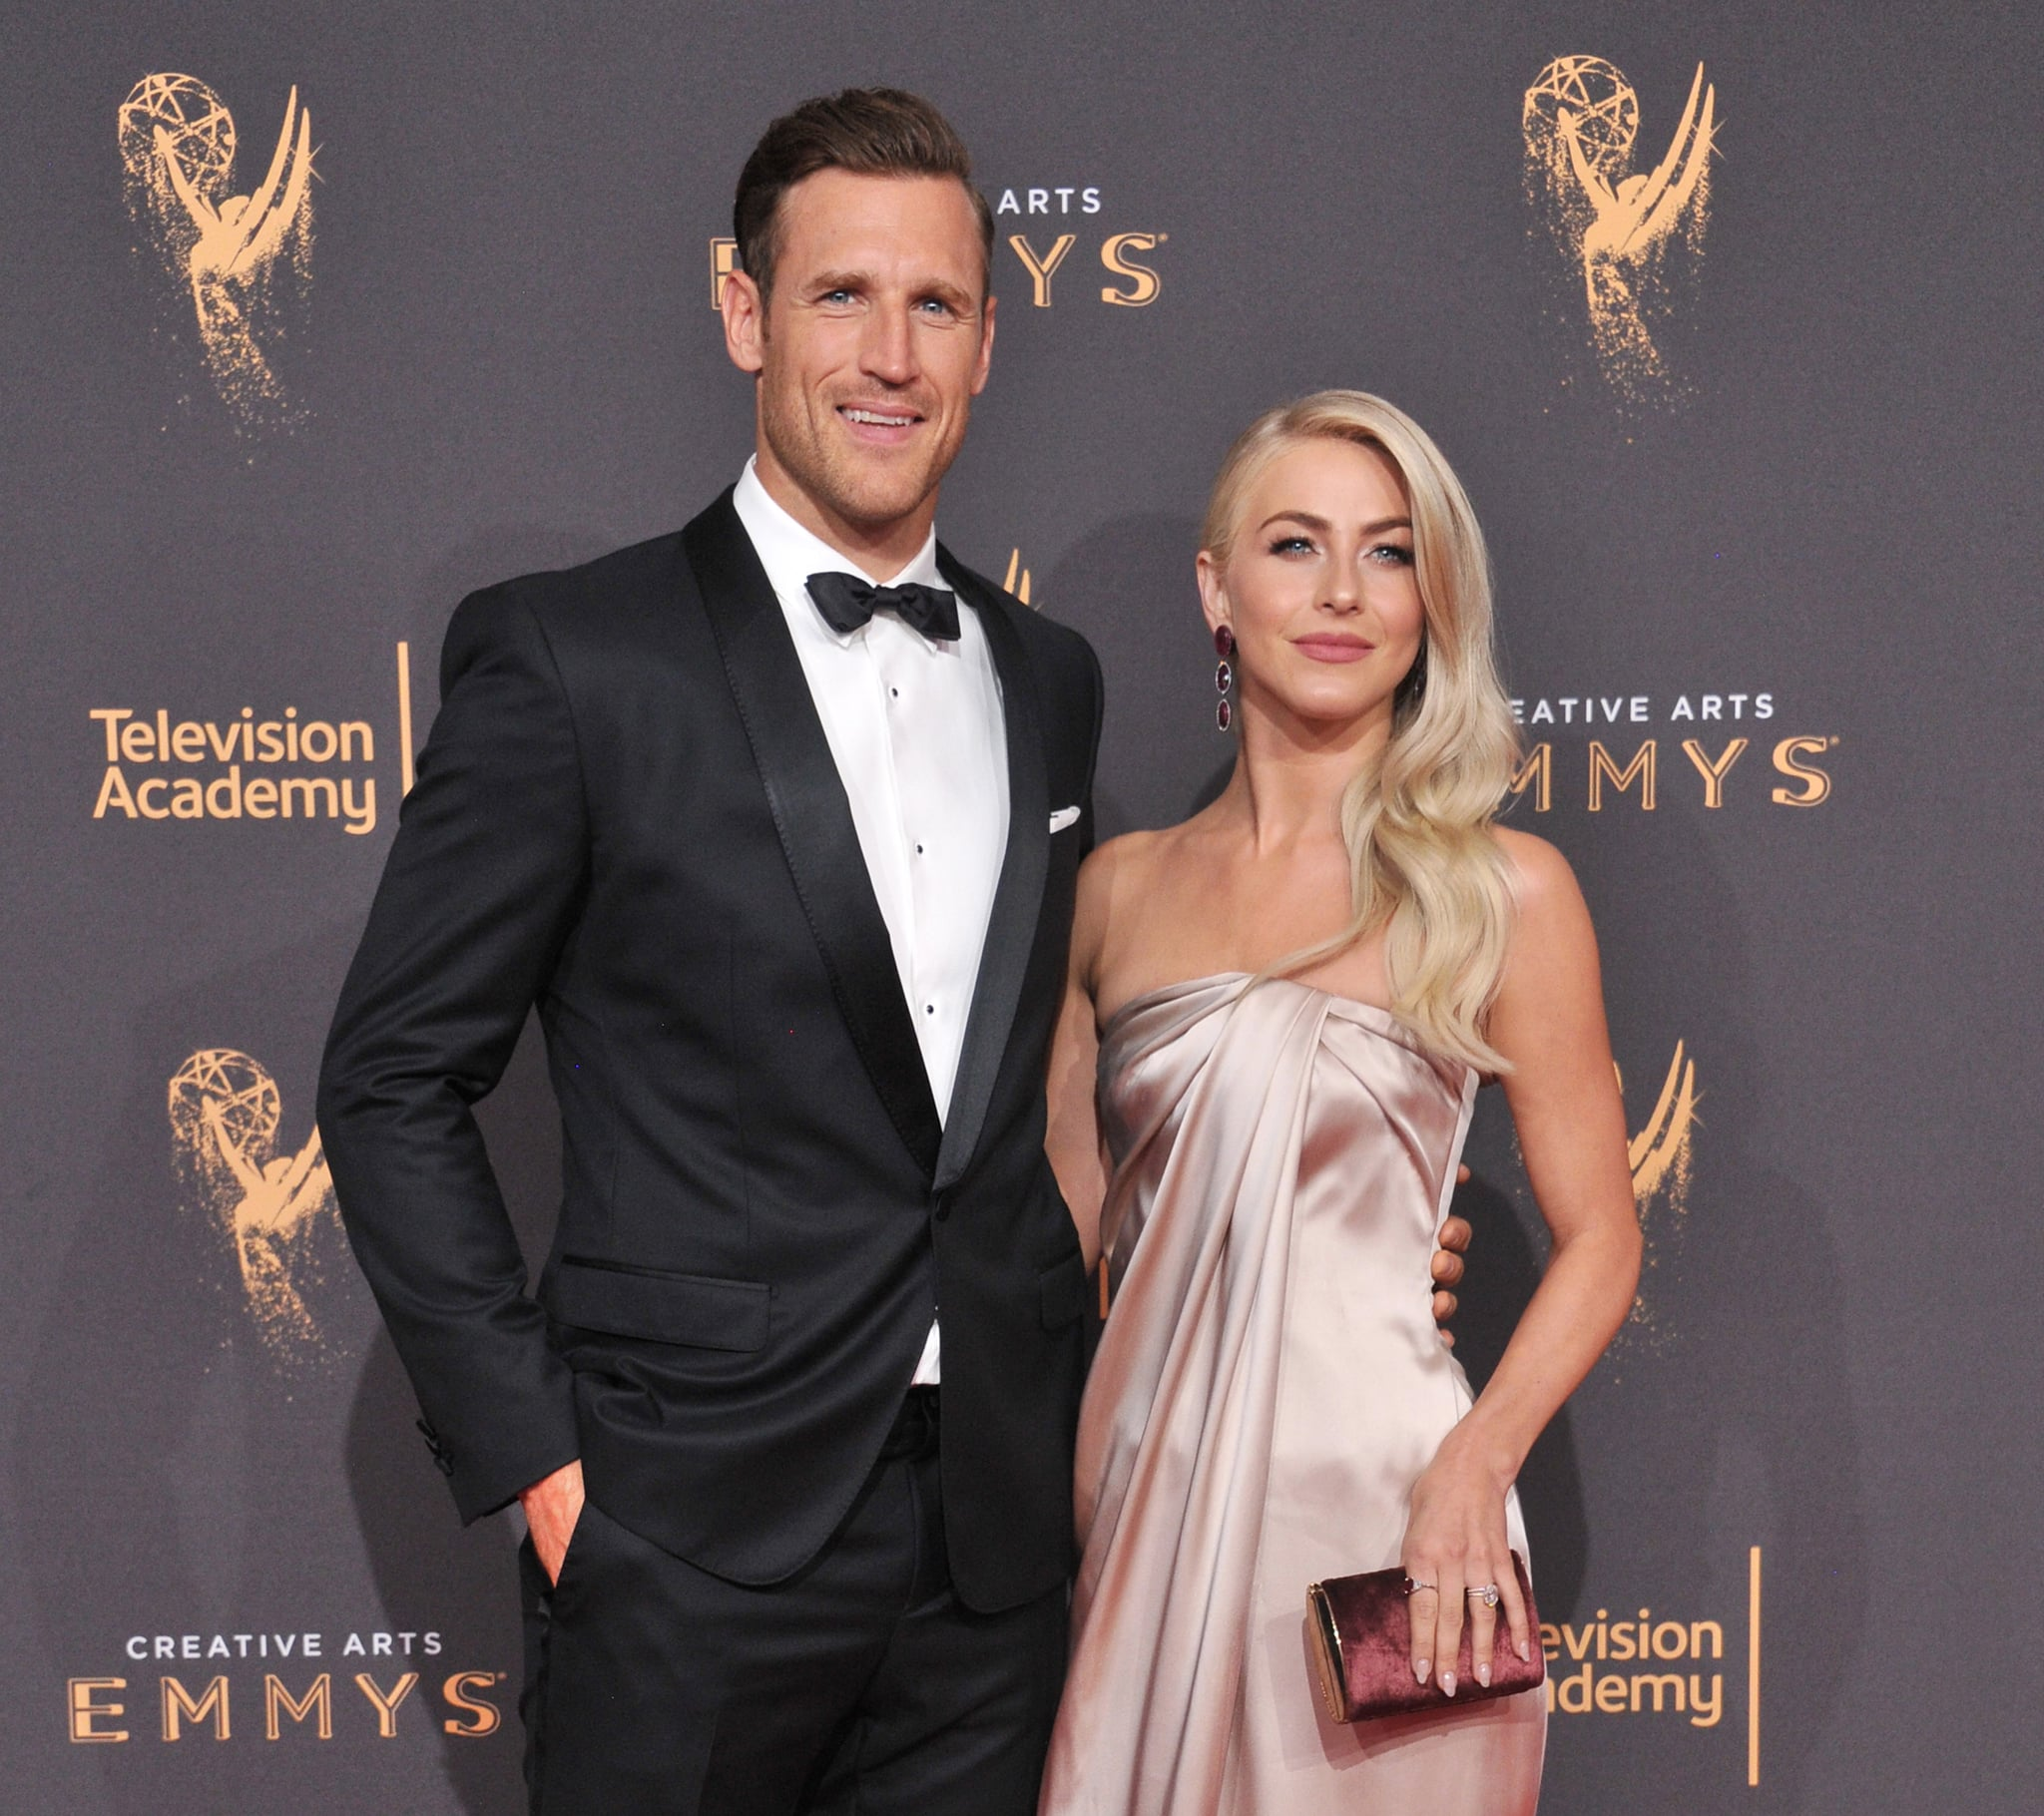 LOS ANGELES, CA - SEPTEMBER 09:  Julianne Hough and Brooks Laich arrive at the 2017 Creative Arts Emmy Awards - Day 1 at Microsoft Theater on September 9, 2017 in Los Angeles, California.  (Photo by Gregg DeGuire/WireImage)